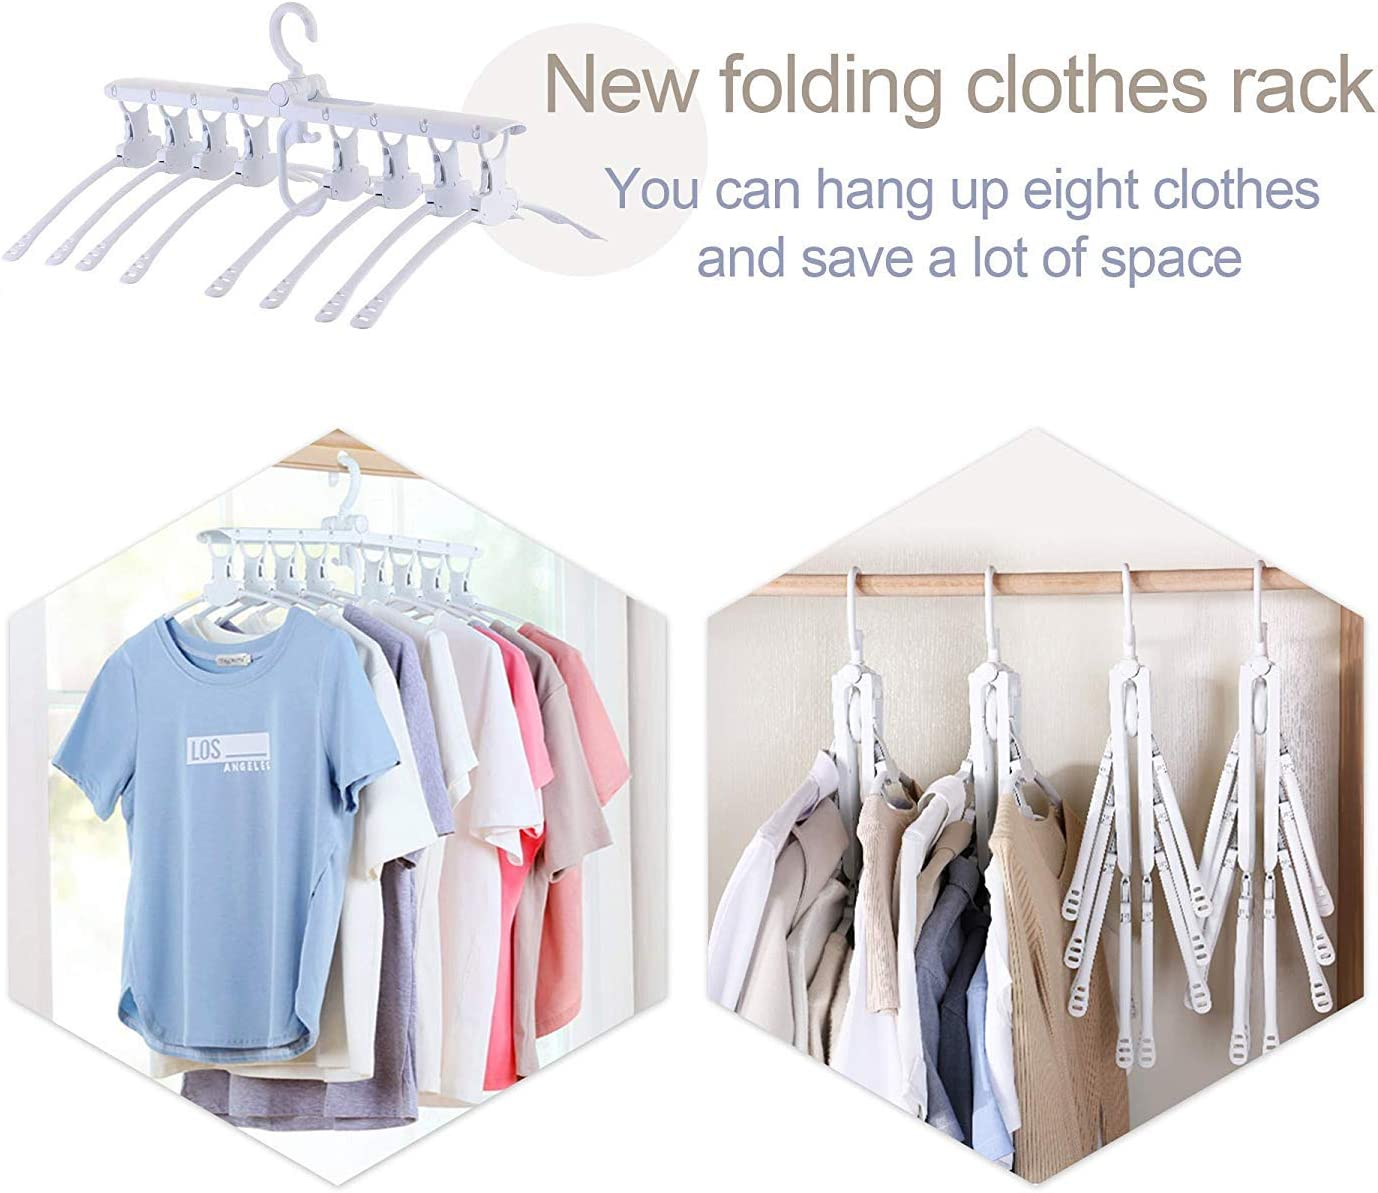 Non Slip Plastic 8 in 1 hangers Wardrobe Space Saver Hanging Organizer Nifty Essentials Space Saving Hangers for Shirts Clothes